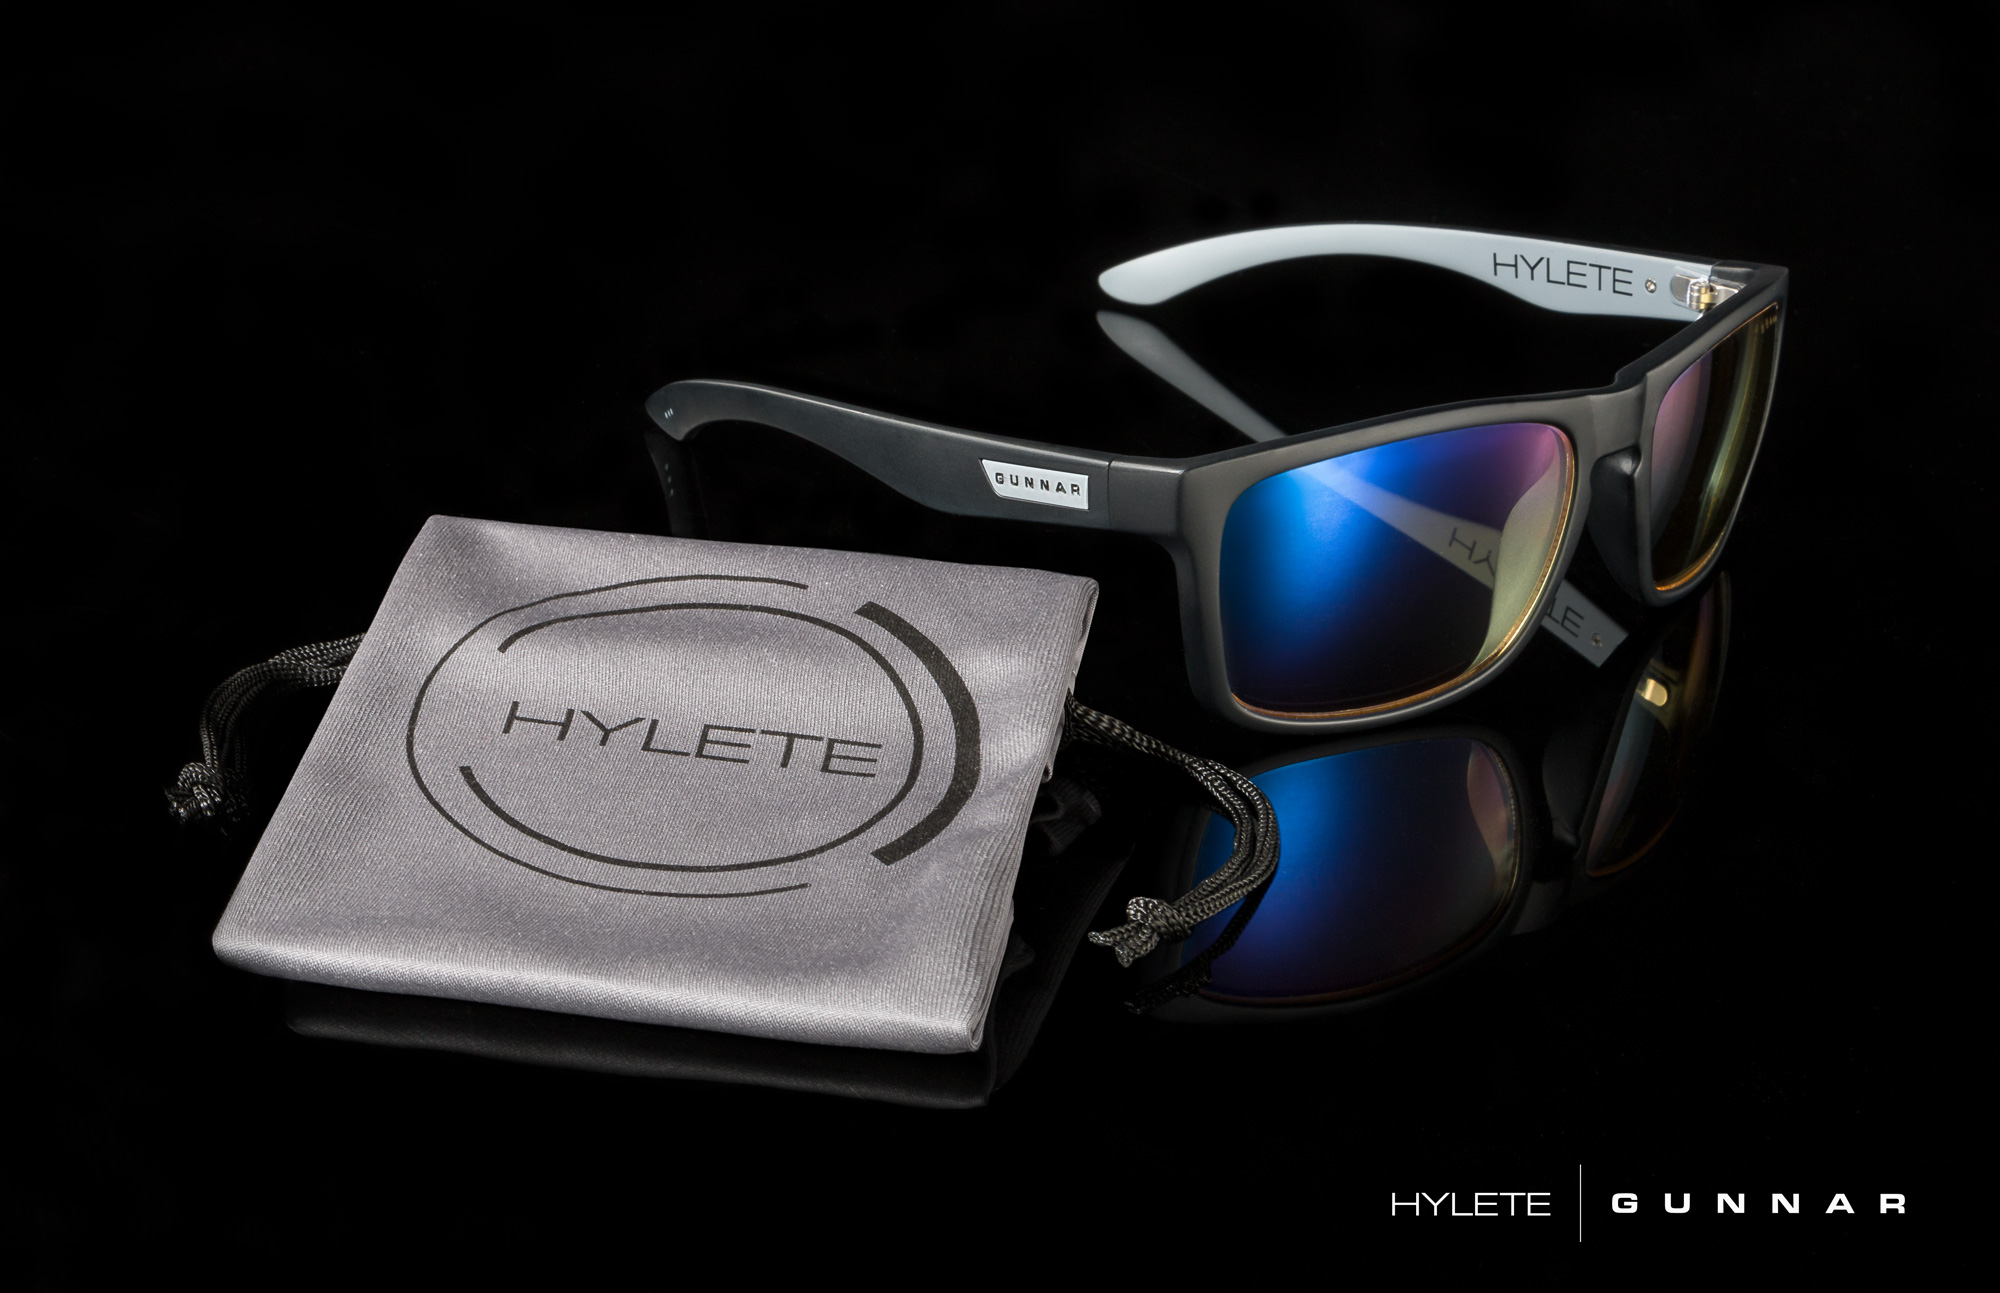 hylete-hero-shot-11.jpg